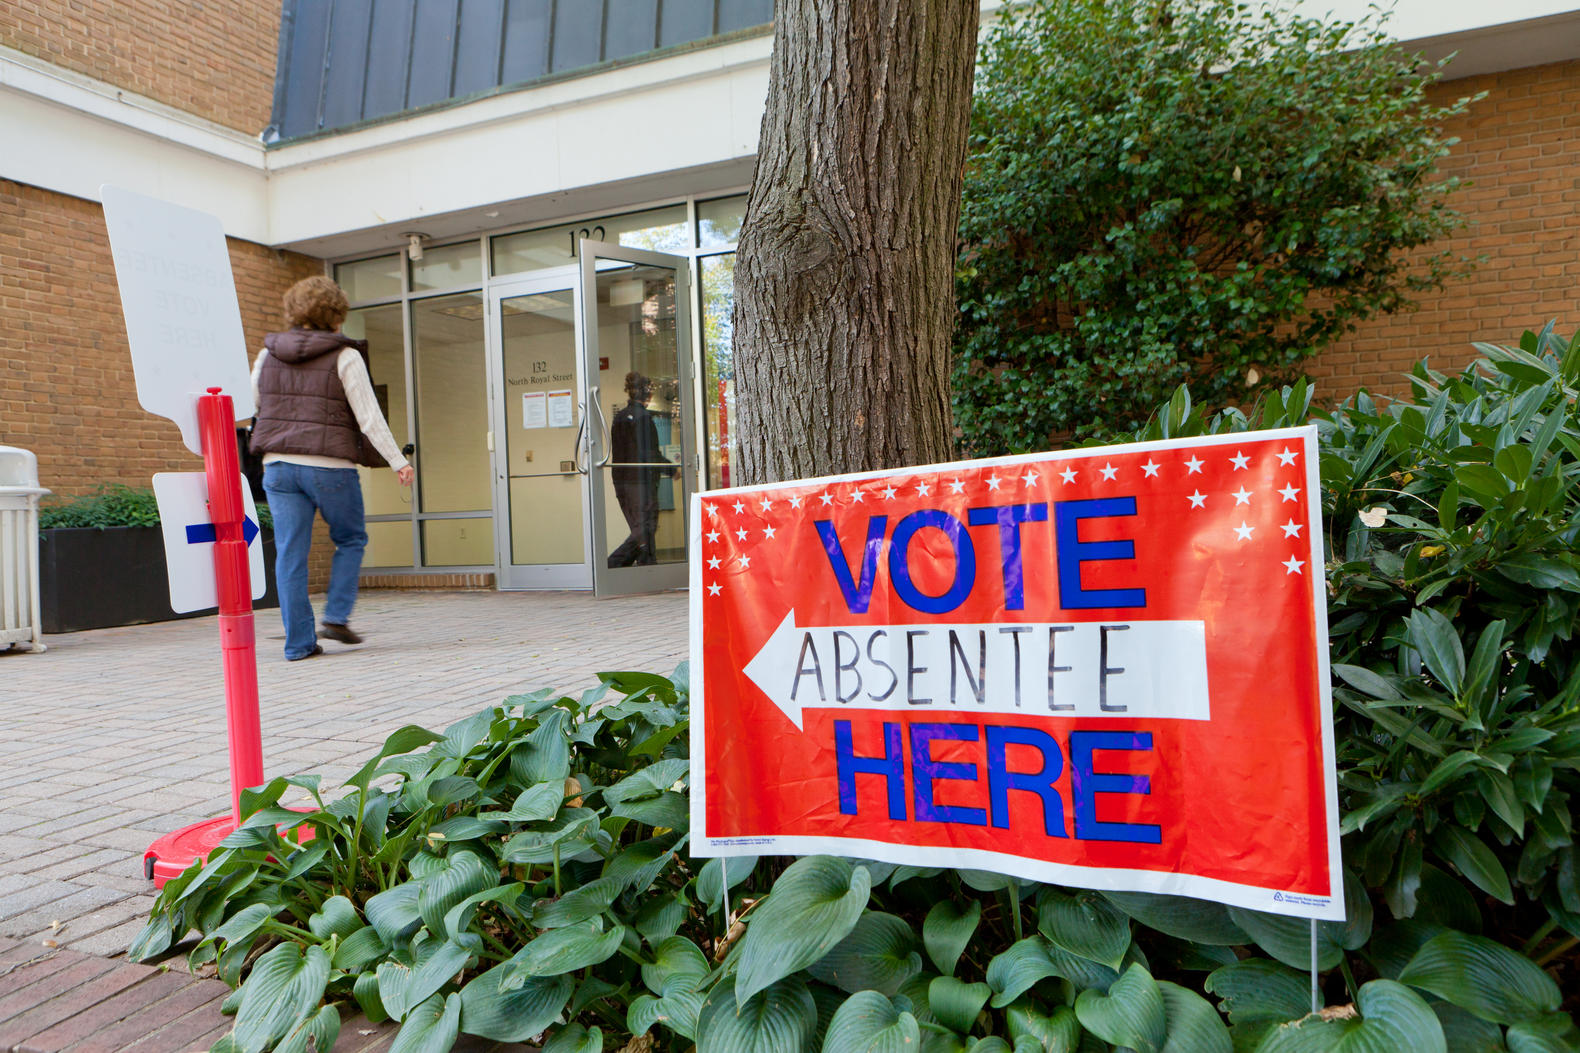 Alexandrians who qualify to vote absentee for the November 6 General Election may cast an absentee ballot in person at the Alexandria Voter Registration Office (132 N. Royal St.).